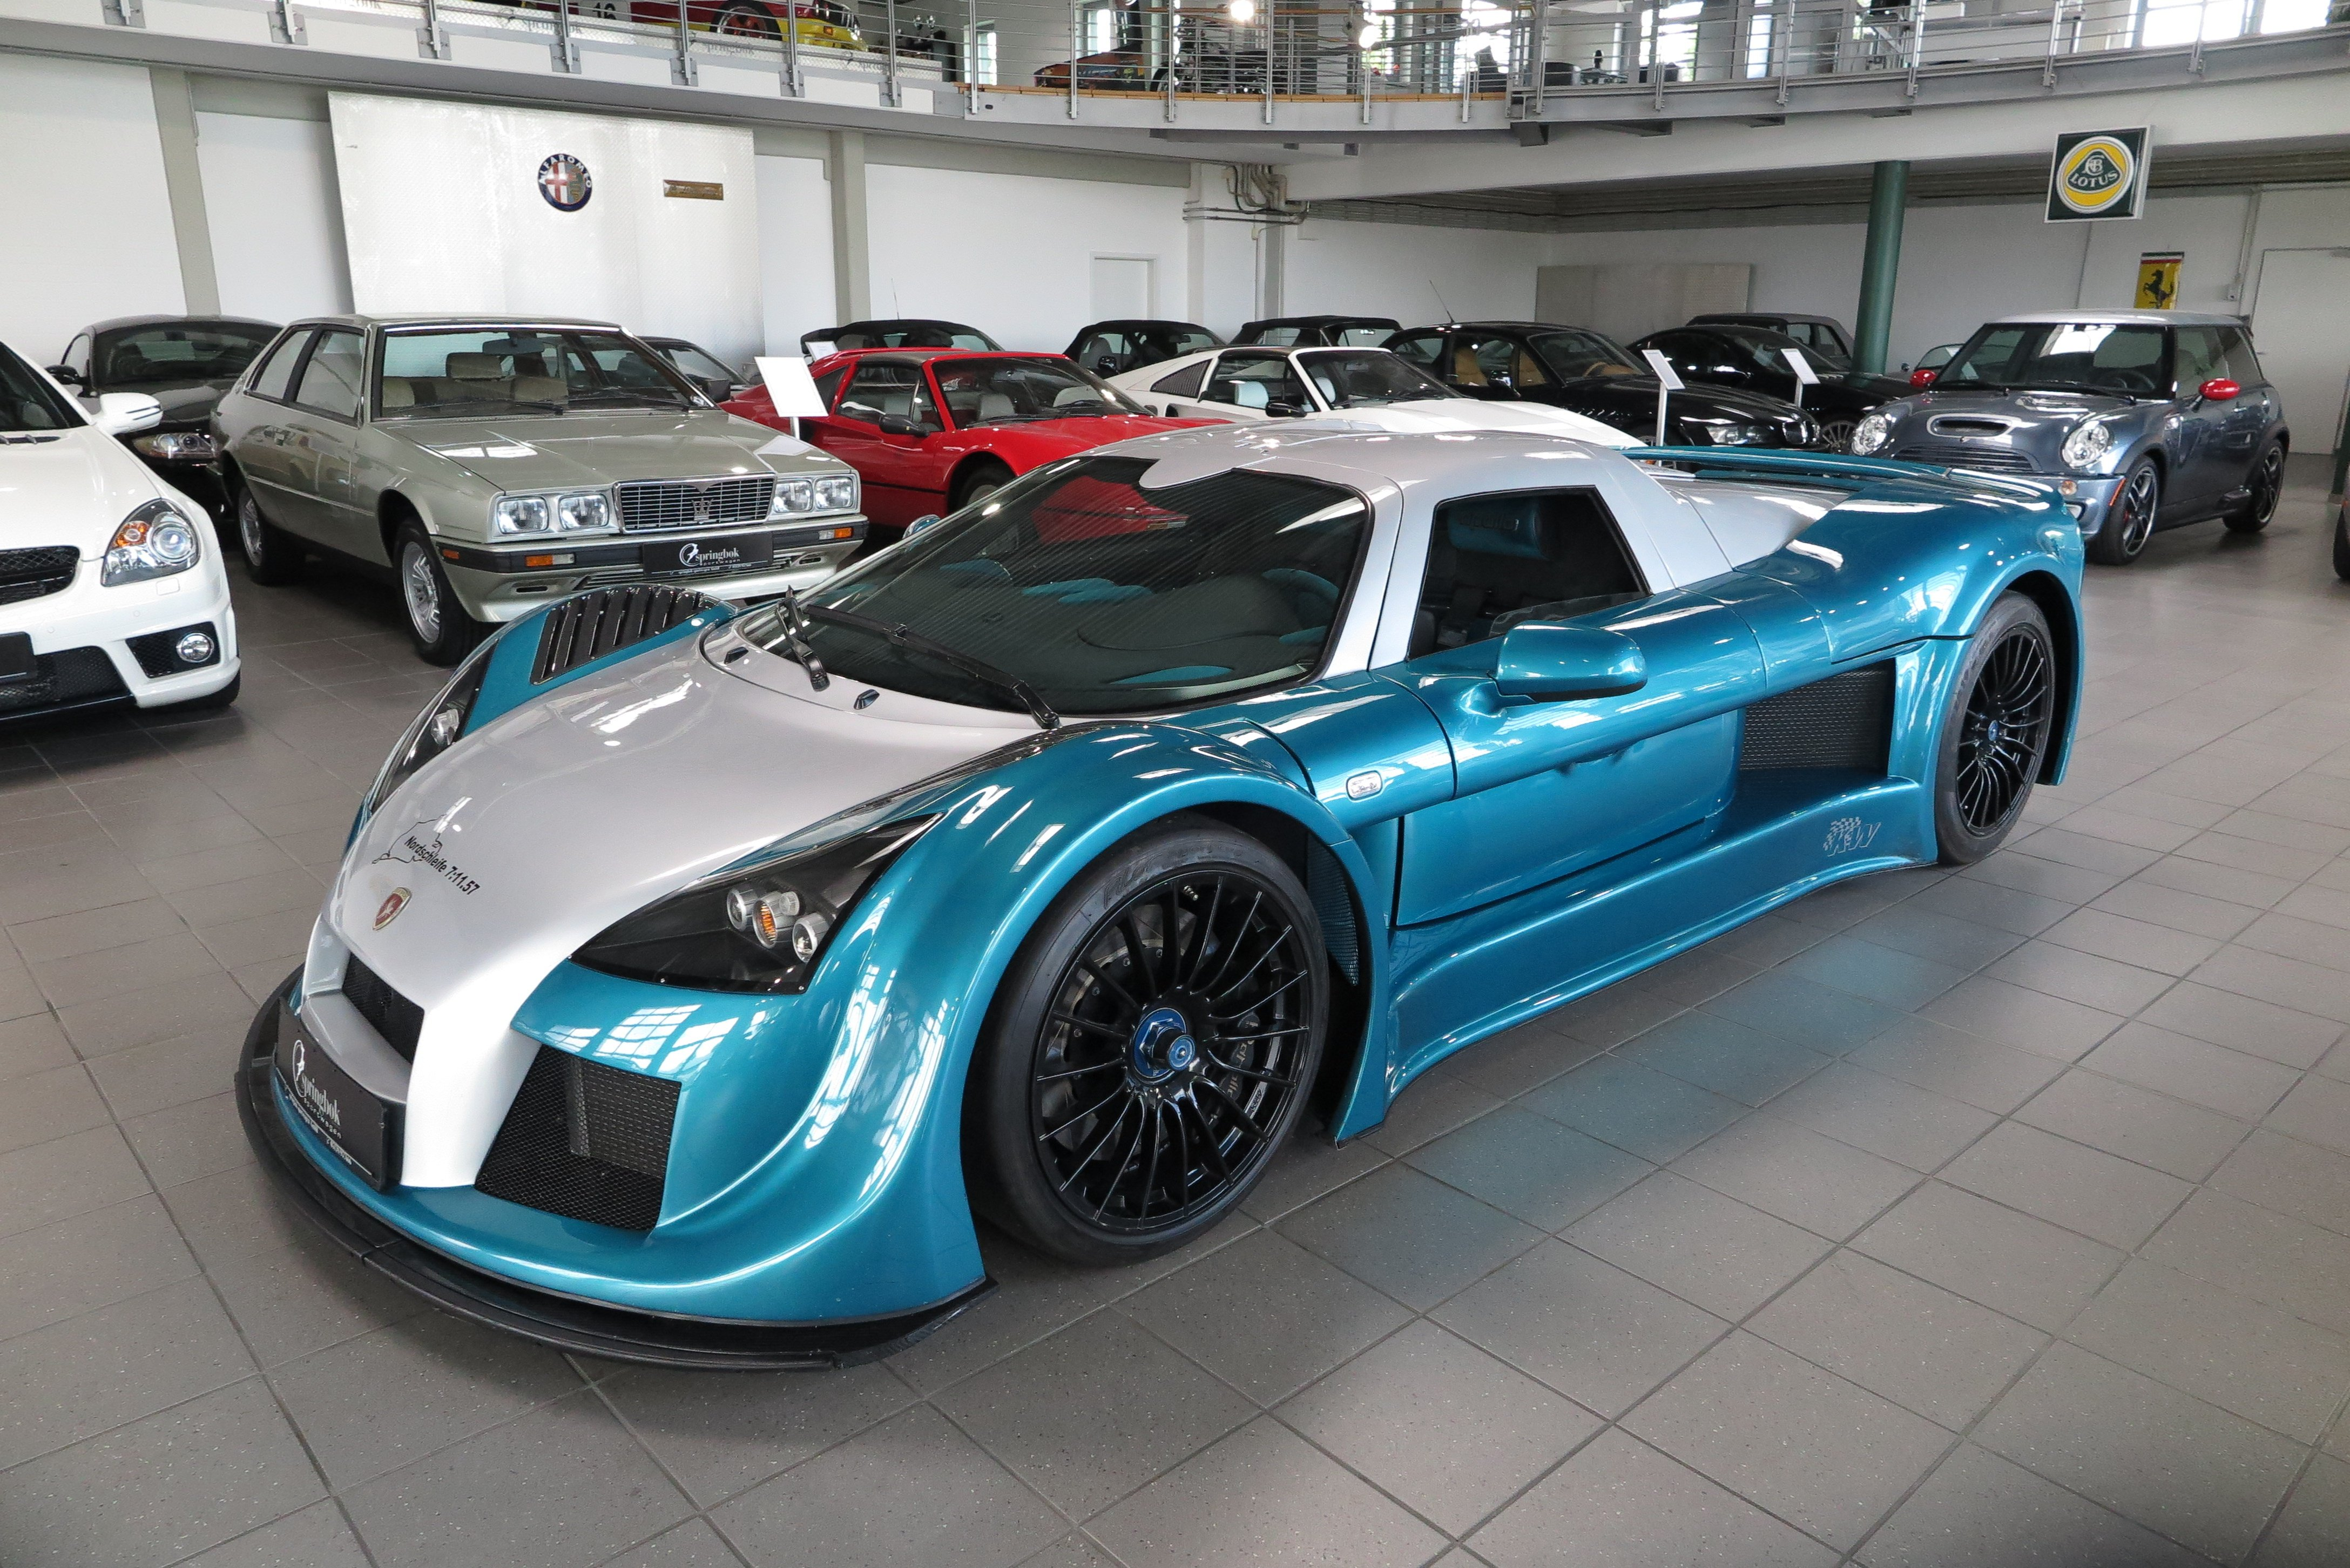 2009 Gumpert Apollo - Apollo Speed *7:11,57 Nordschleife*